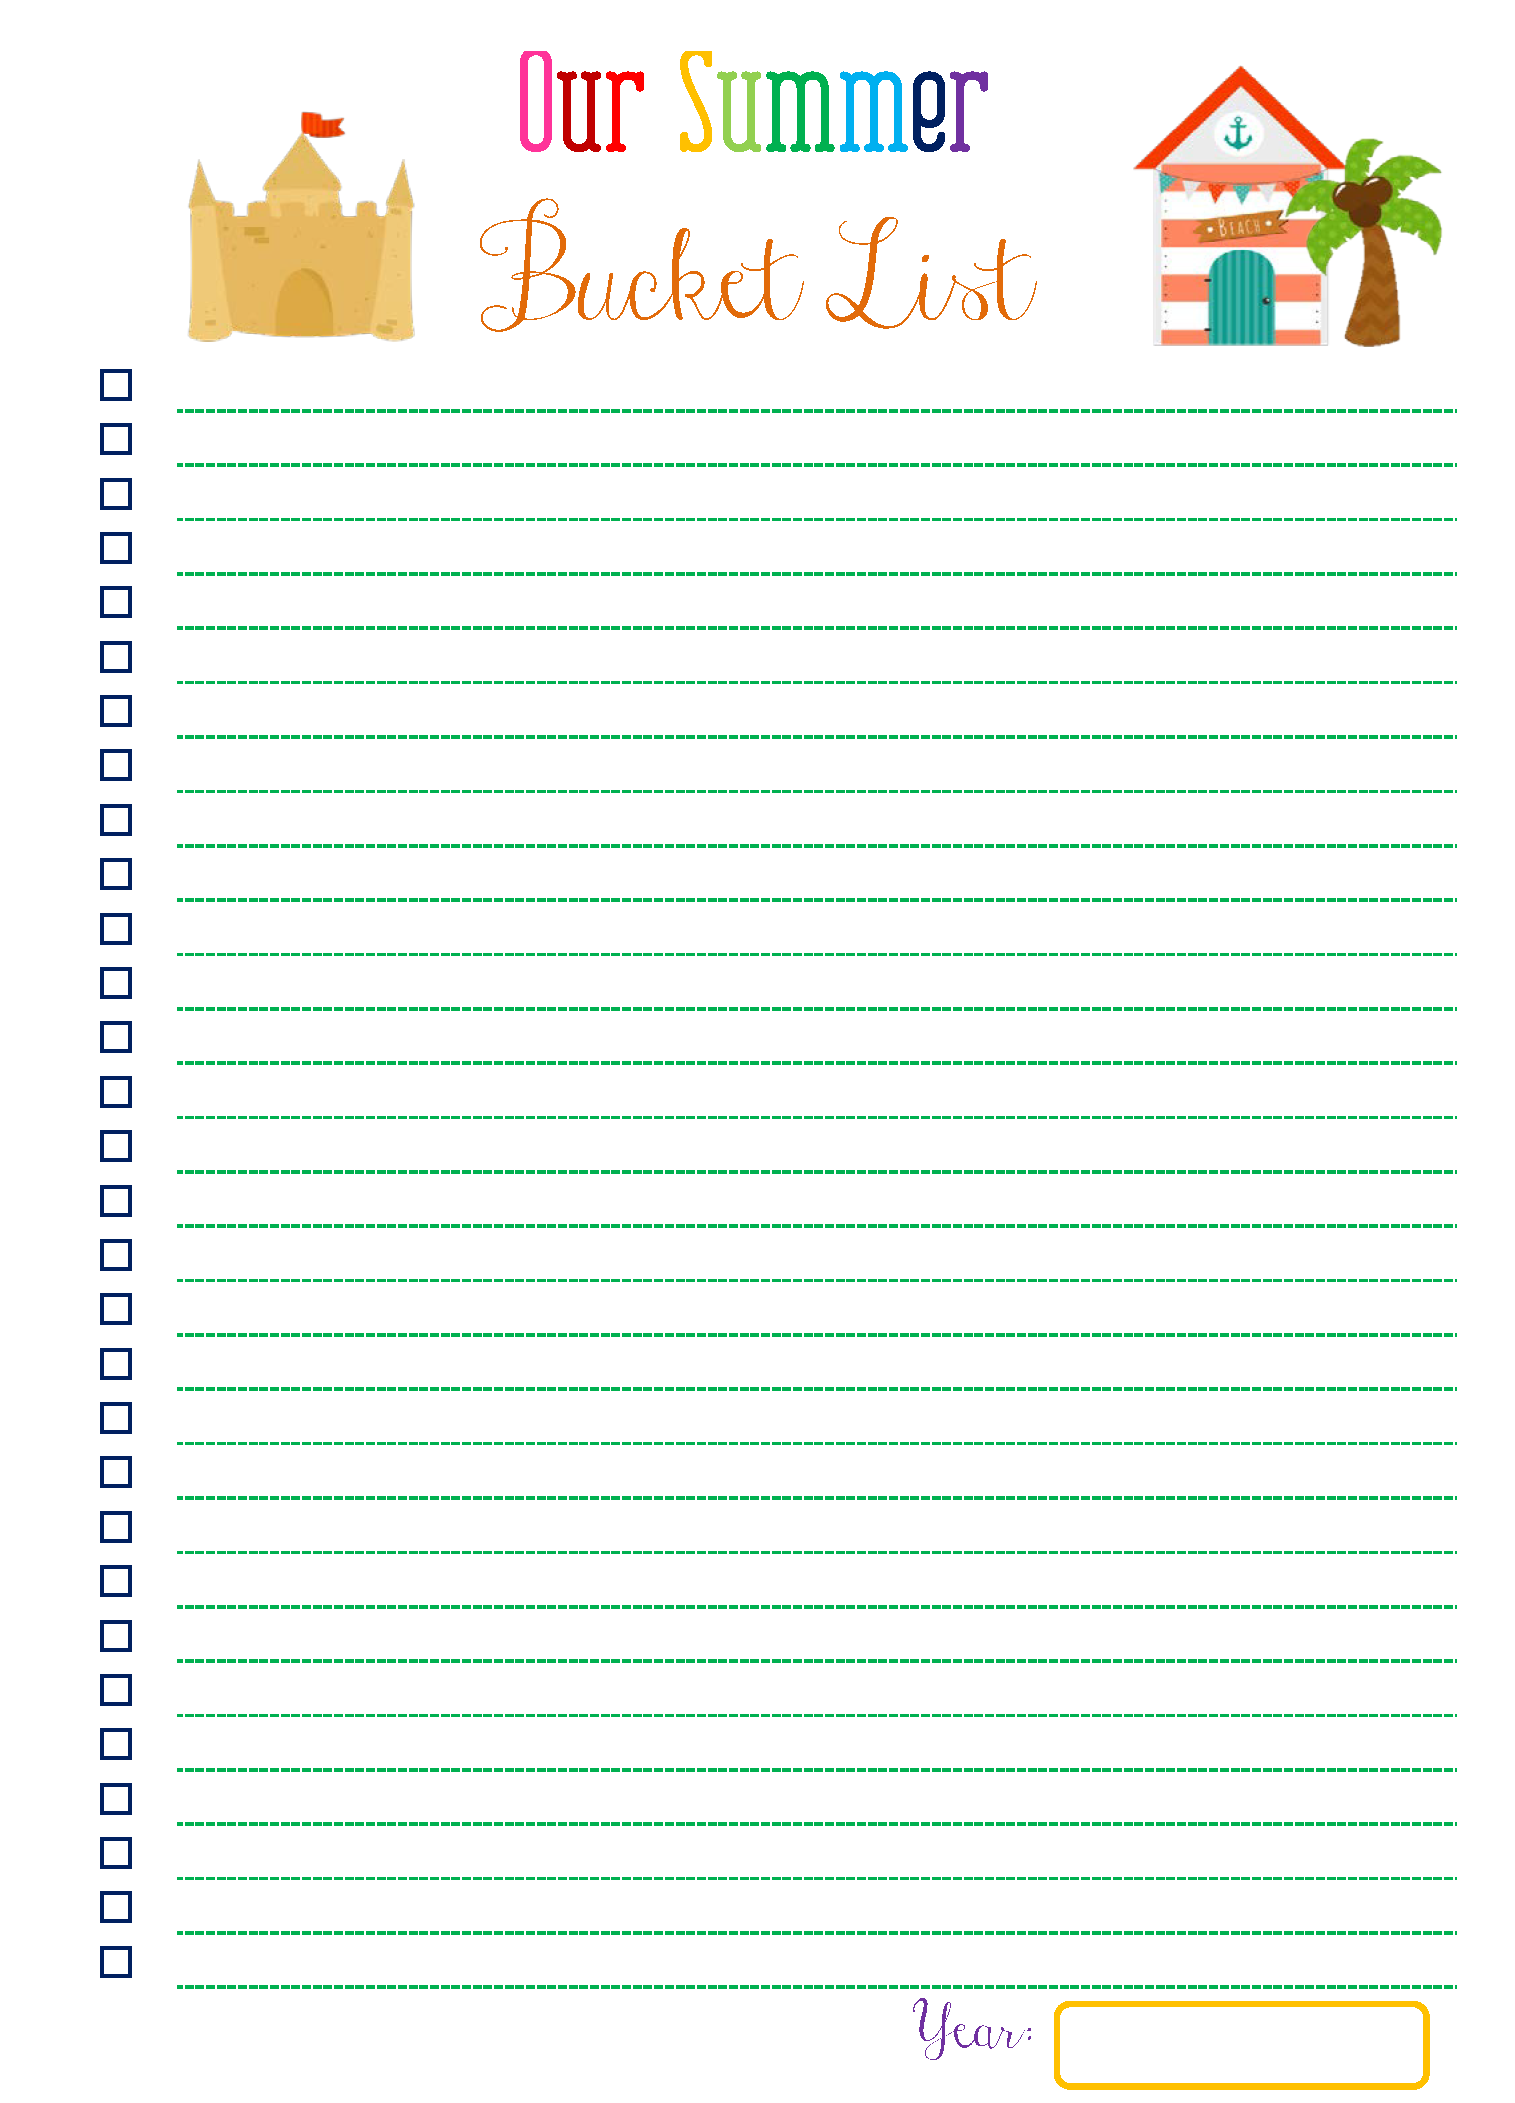 photograph relating to Bucket List Printable identify Building a Summer time Bucket Checklist